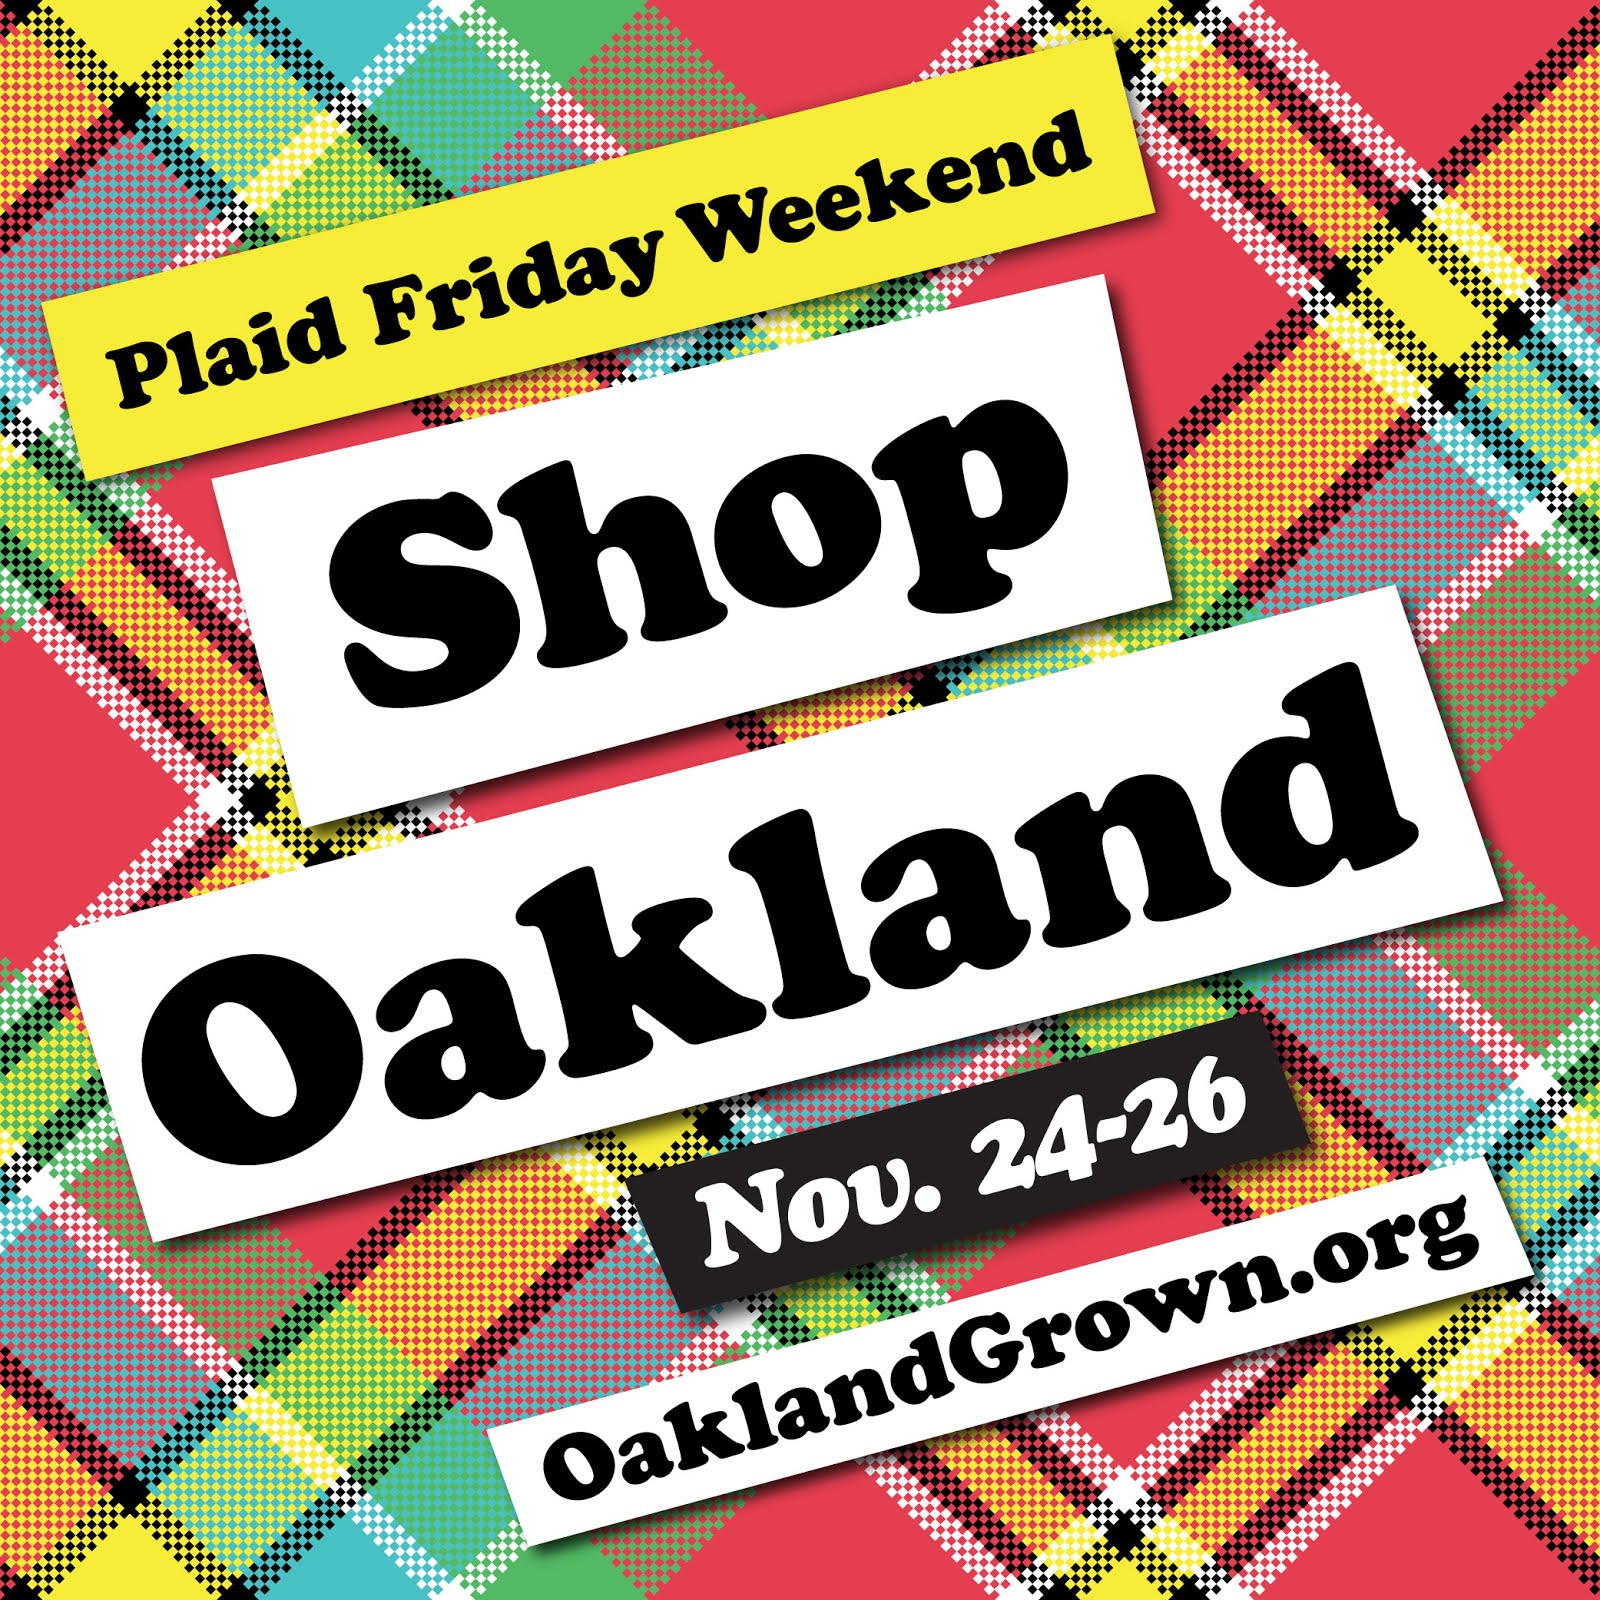 Plaid Friday Weekend - Shop Local - OaklandGrown.org